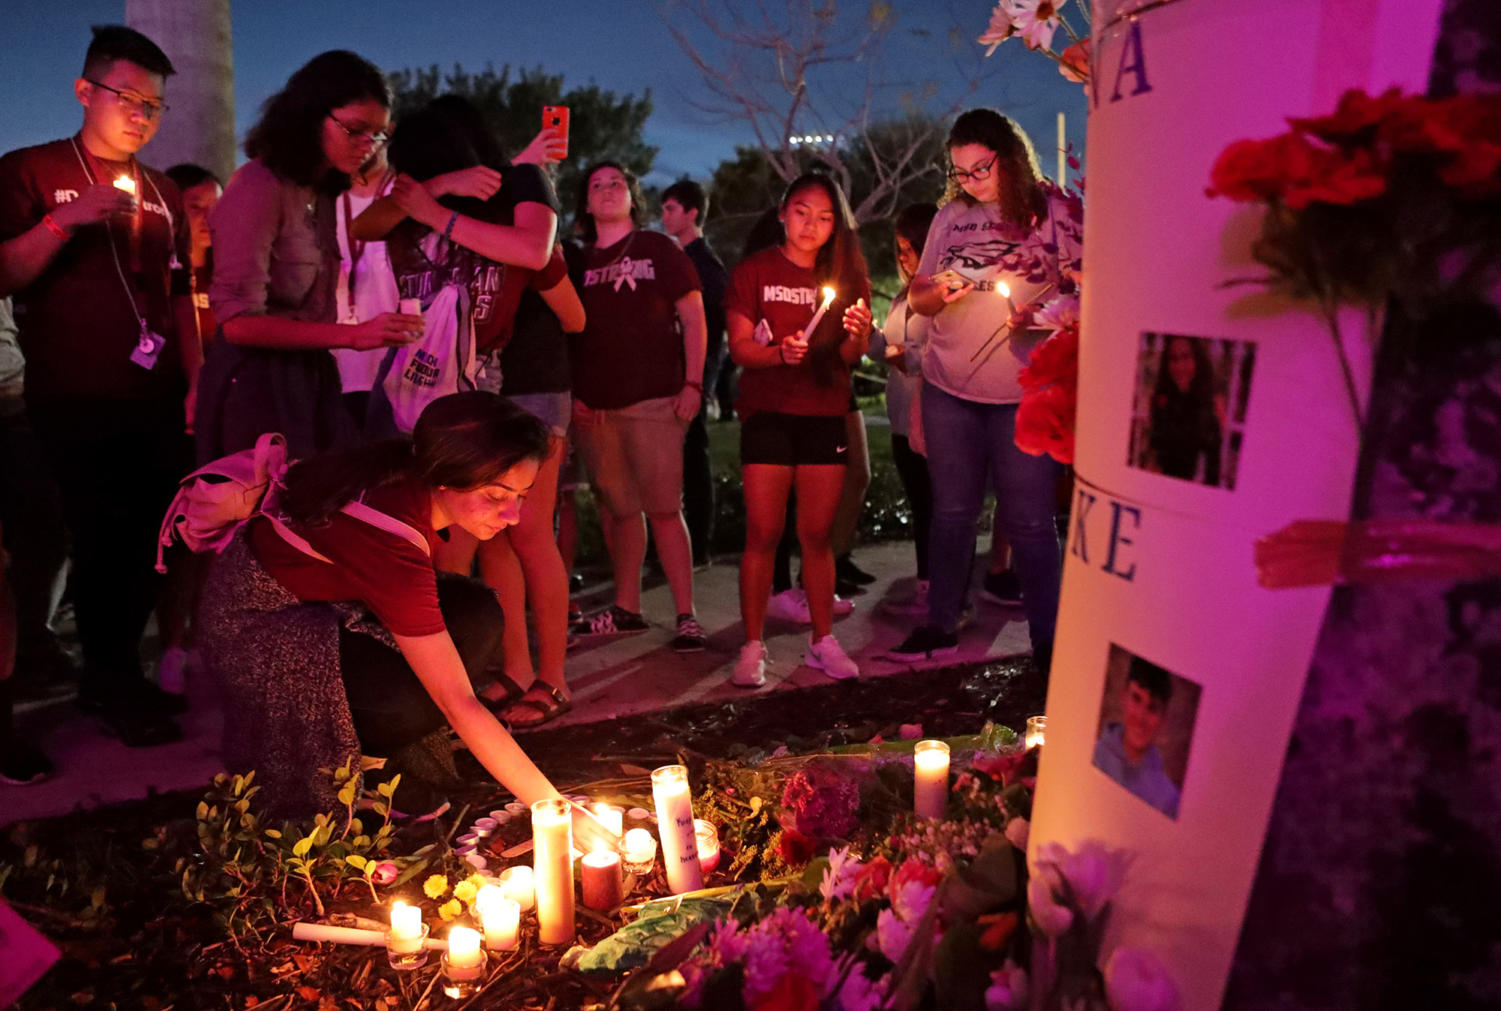 People light candles for a makeshift memorial after an interfaith ceremony at Pine Trails Park in Parkland, Fla., to remember the 17 victims killed last year at Marjory Stoneman Douglas High School, on Thursday, Feb. 14, 2019.